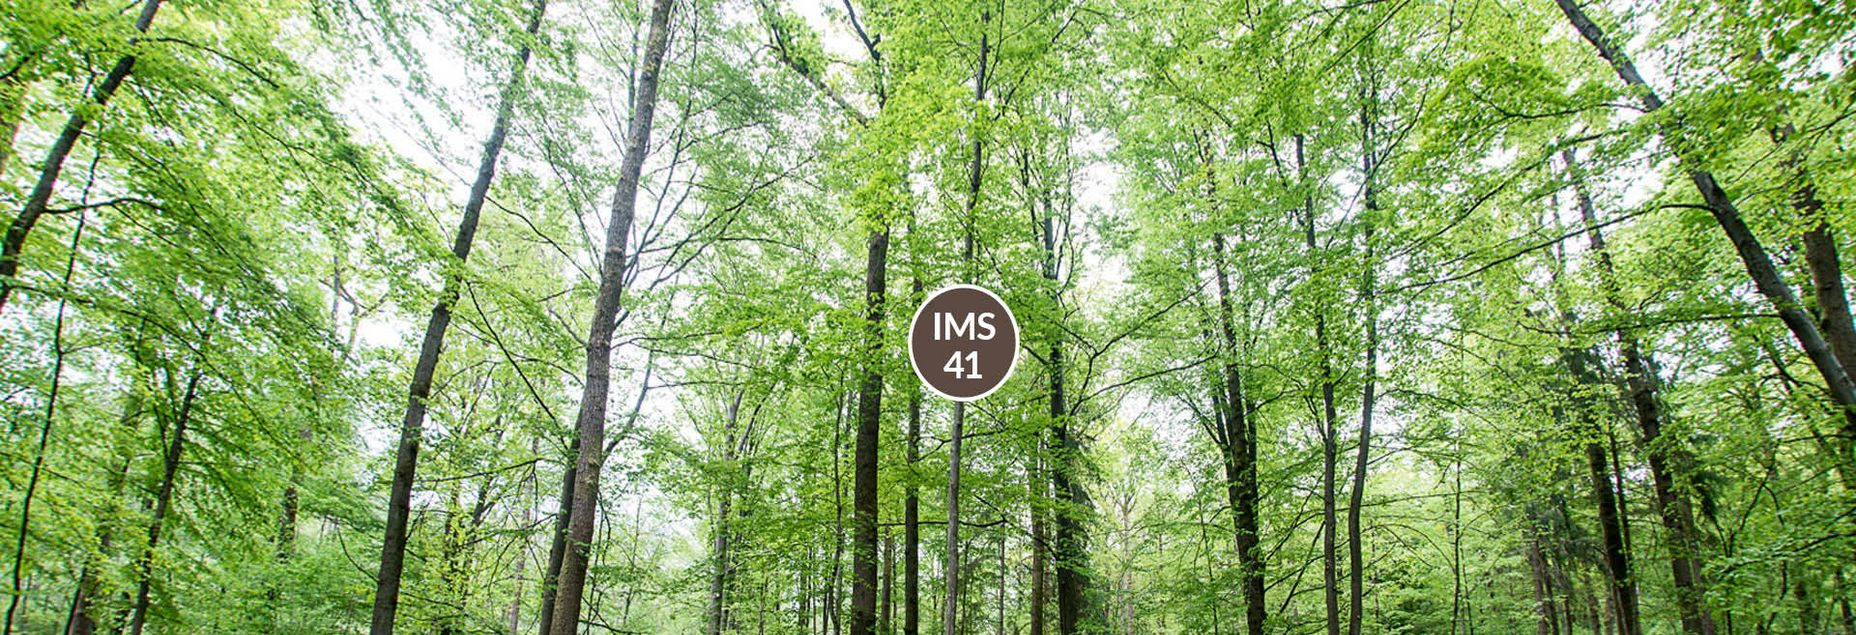 FriedWald-Onlineshop IMS 41